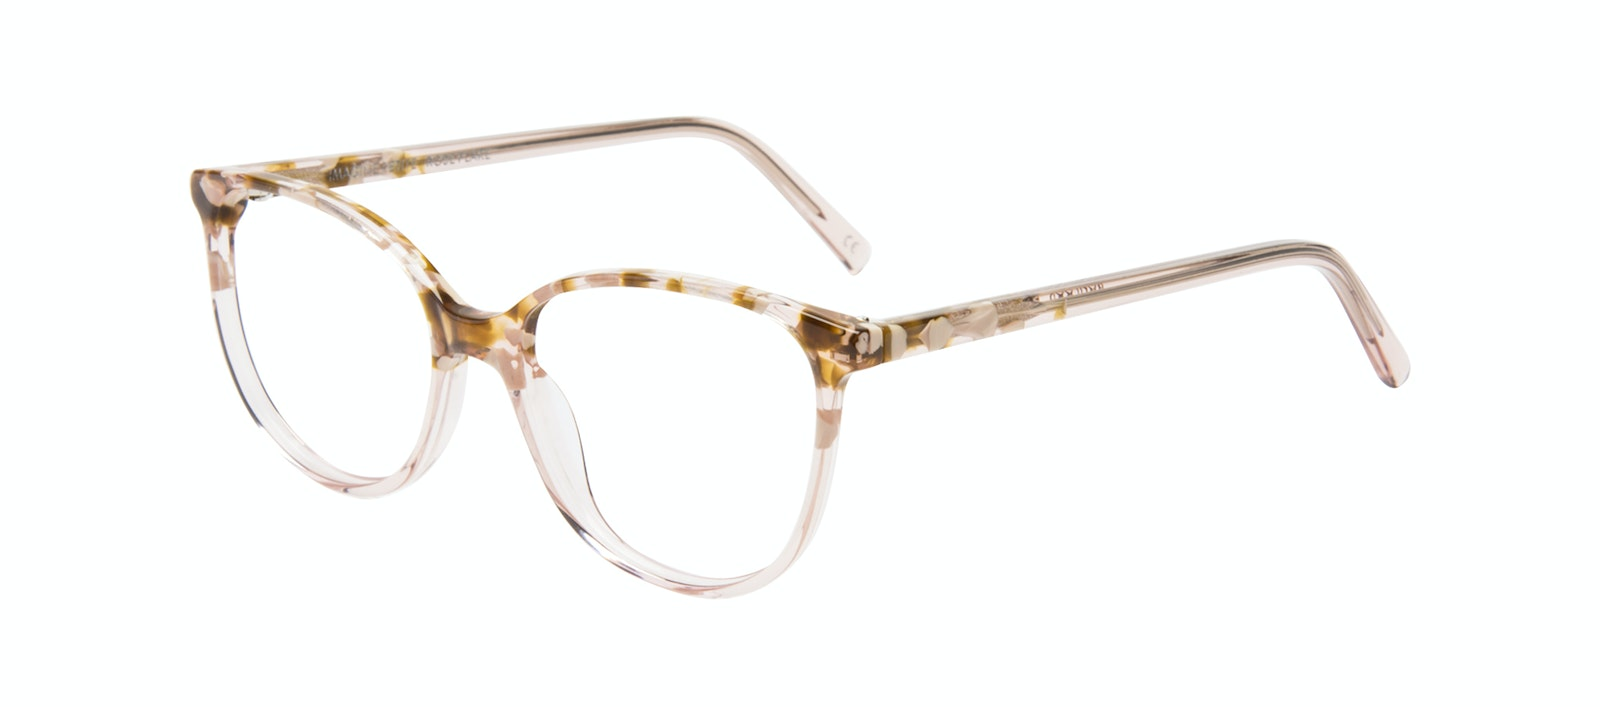 1e1f36e8ae62 Affordable Fashion Glasses Round Eyeglasses Women Imagine Petite Rose Flake  Tilt